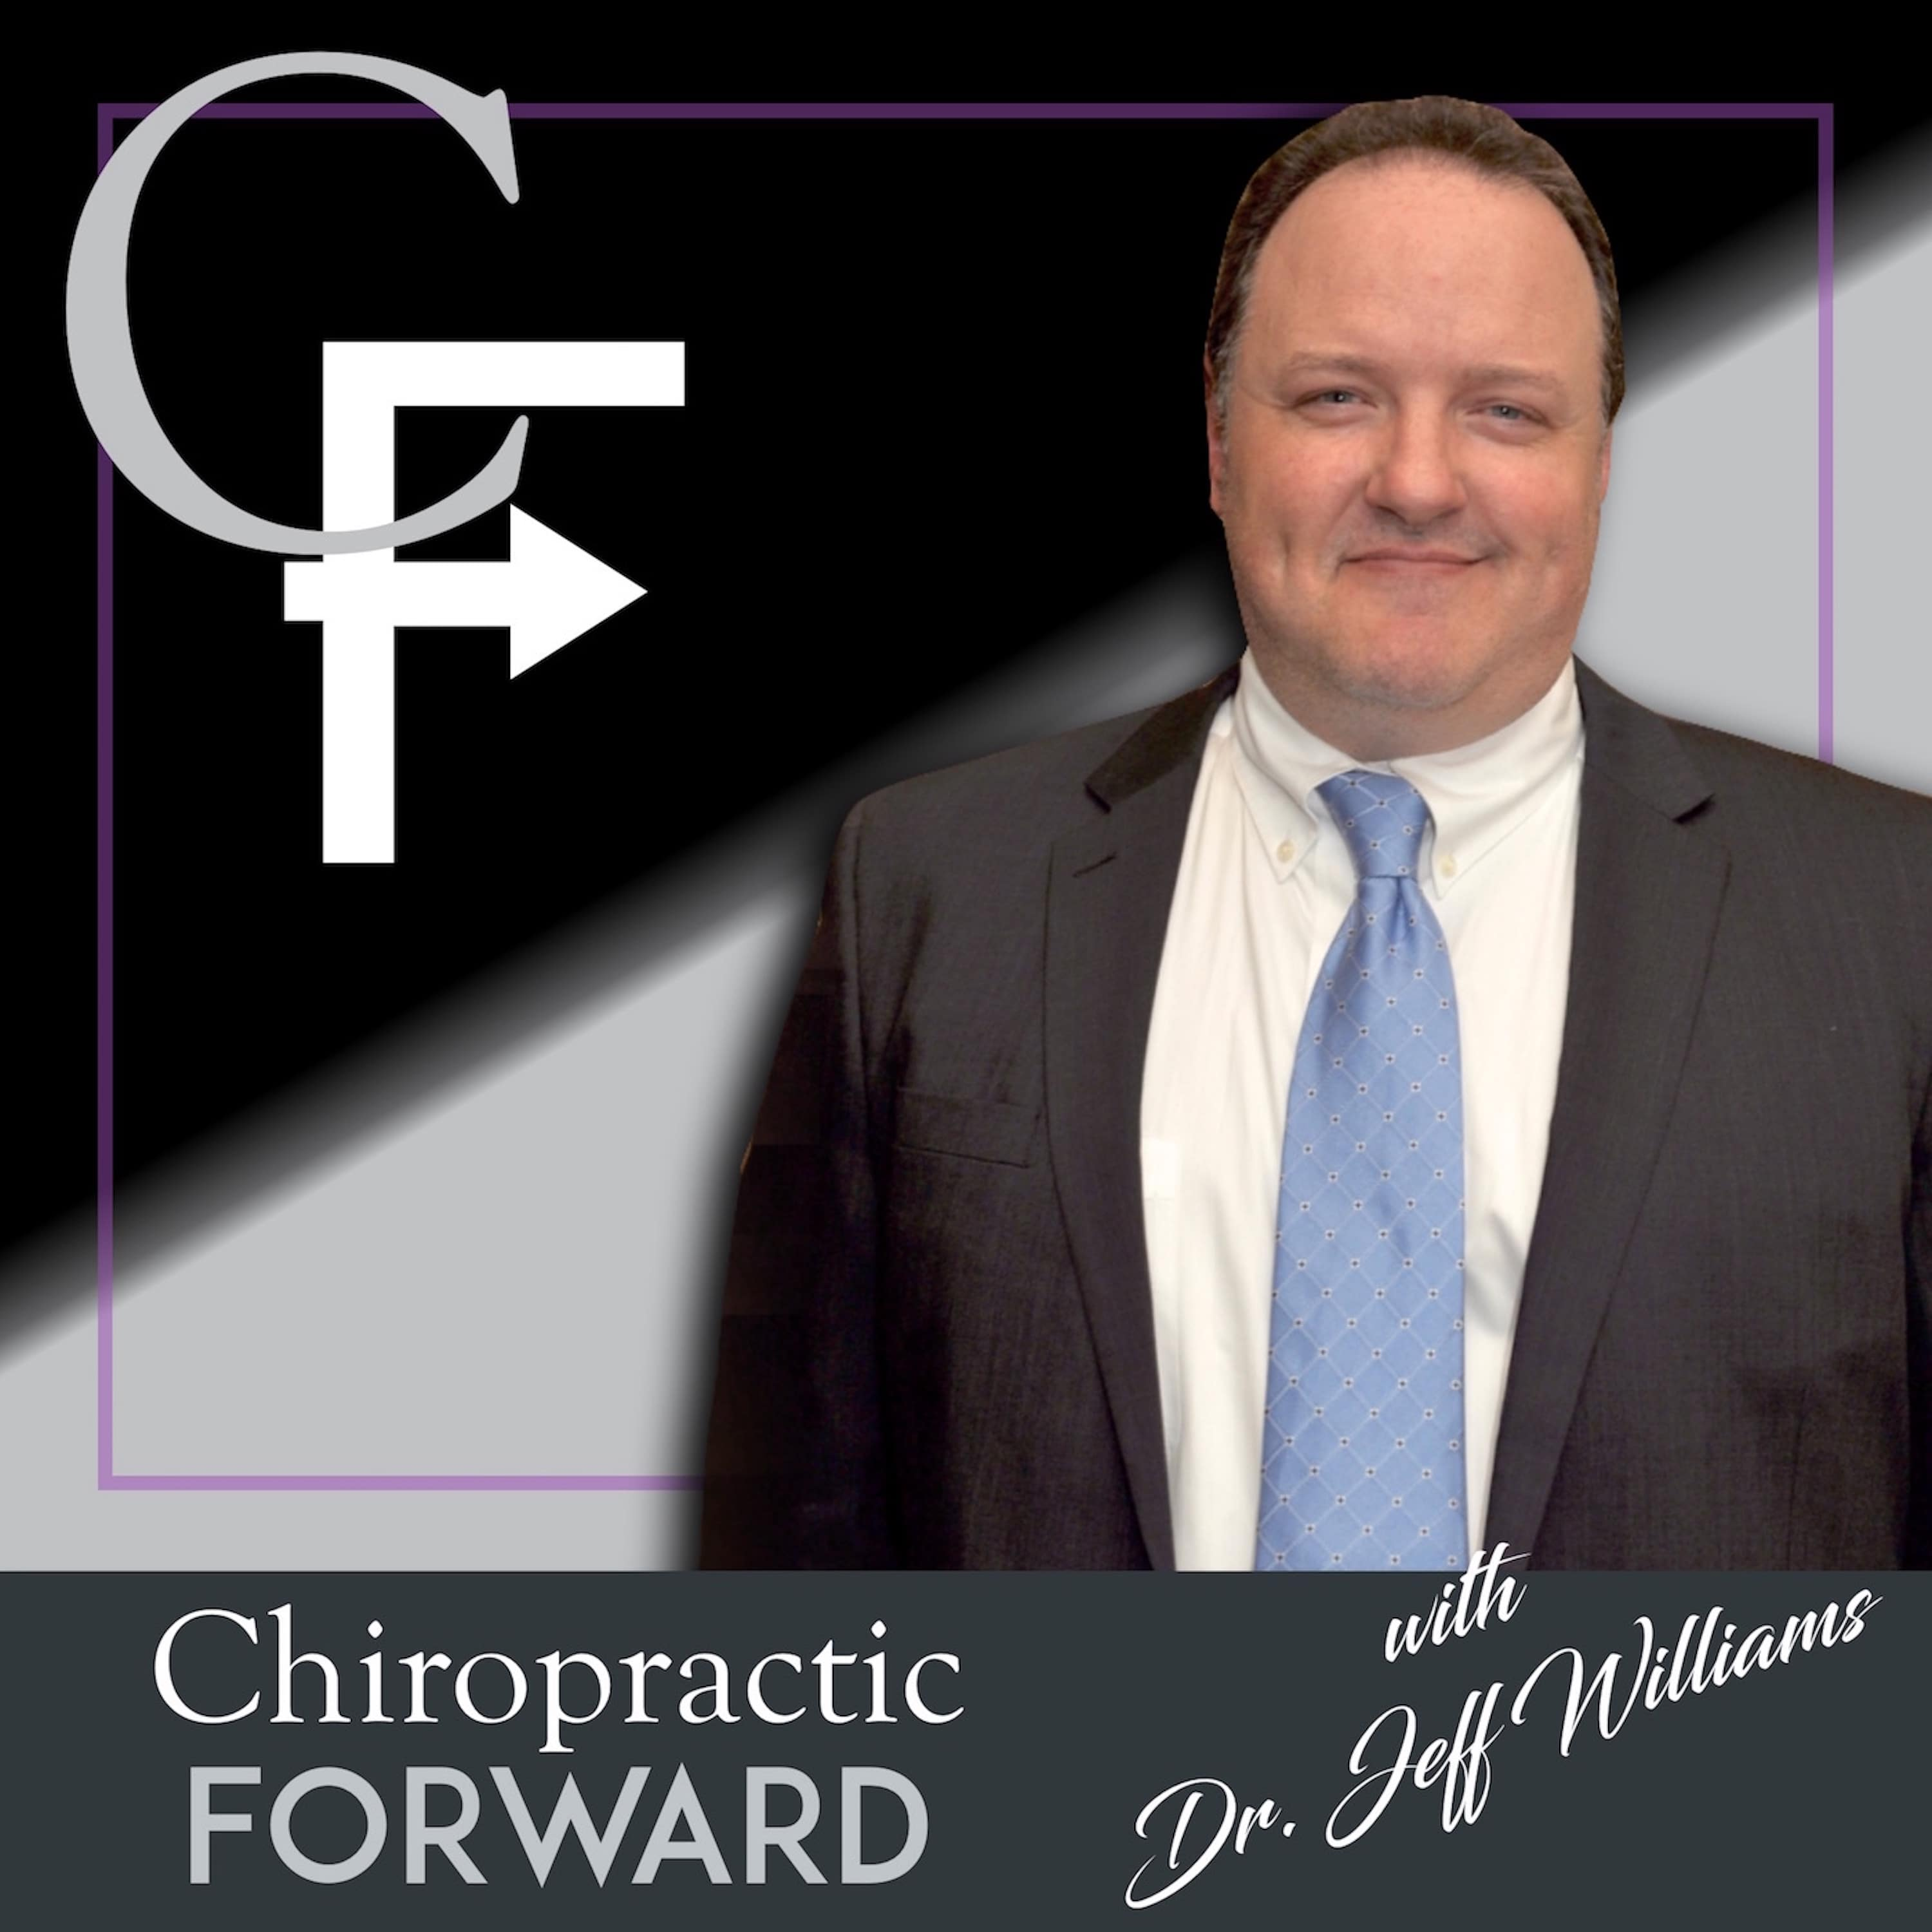 Evidence based chiropractic forward podcast